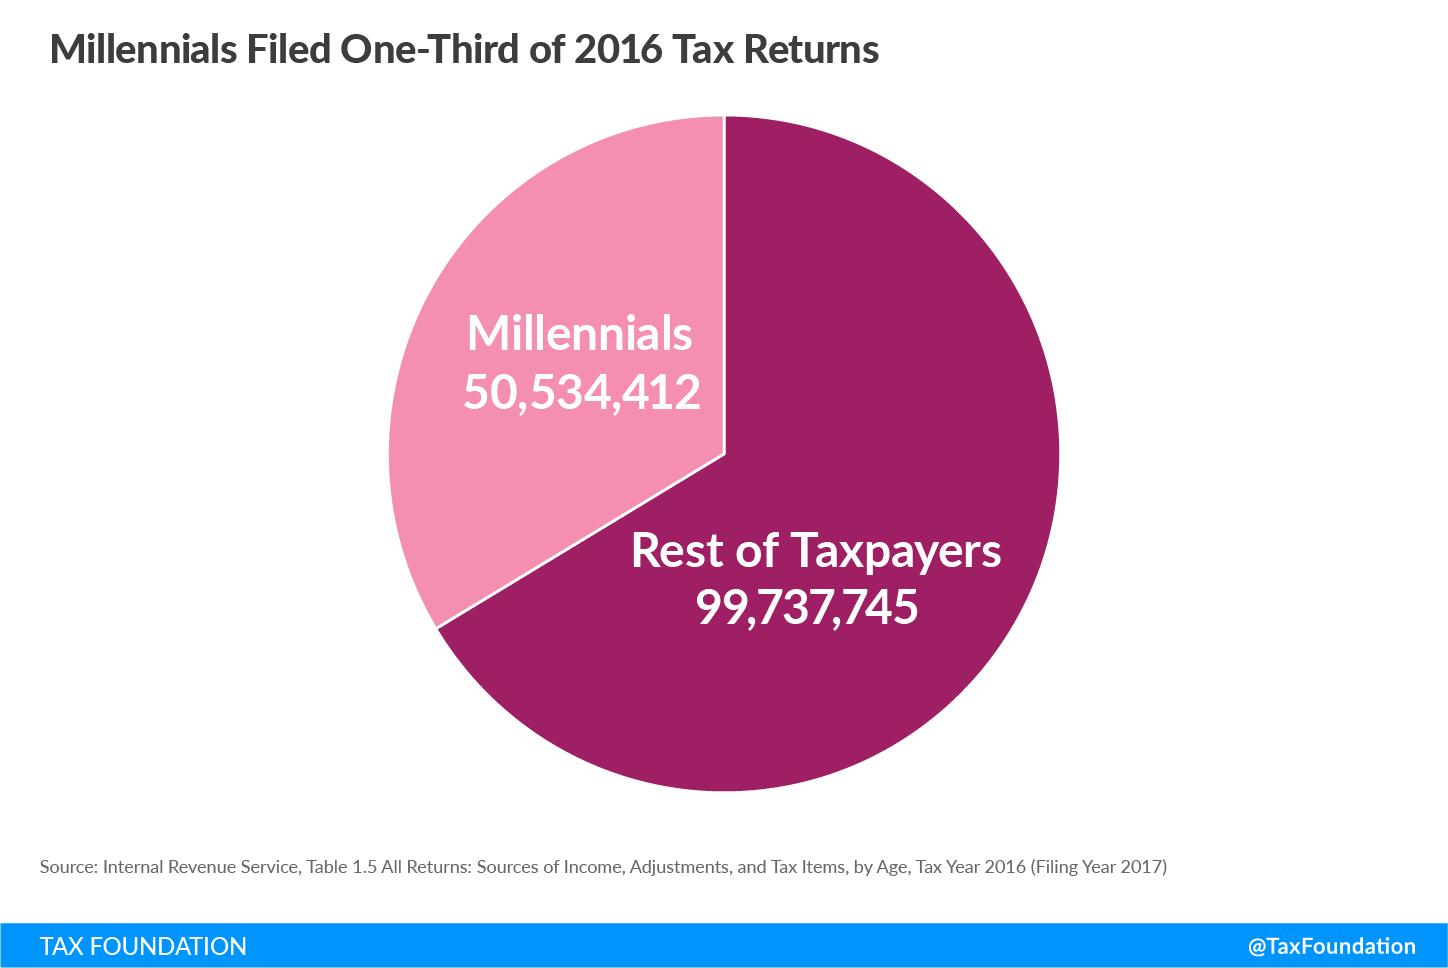 Millennials filed one-third of 2016 tax returns